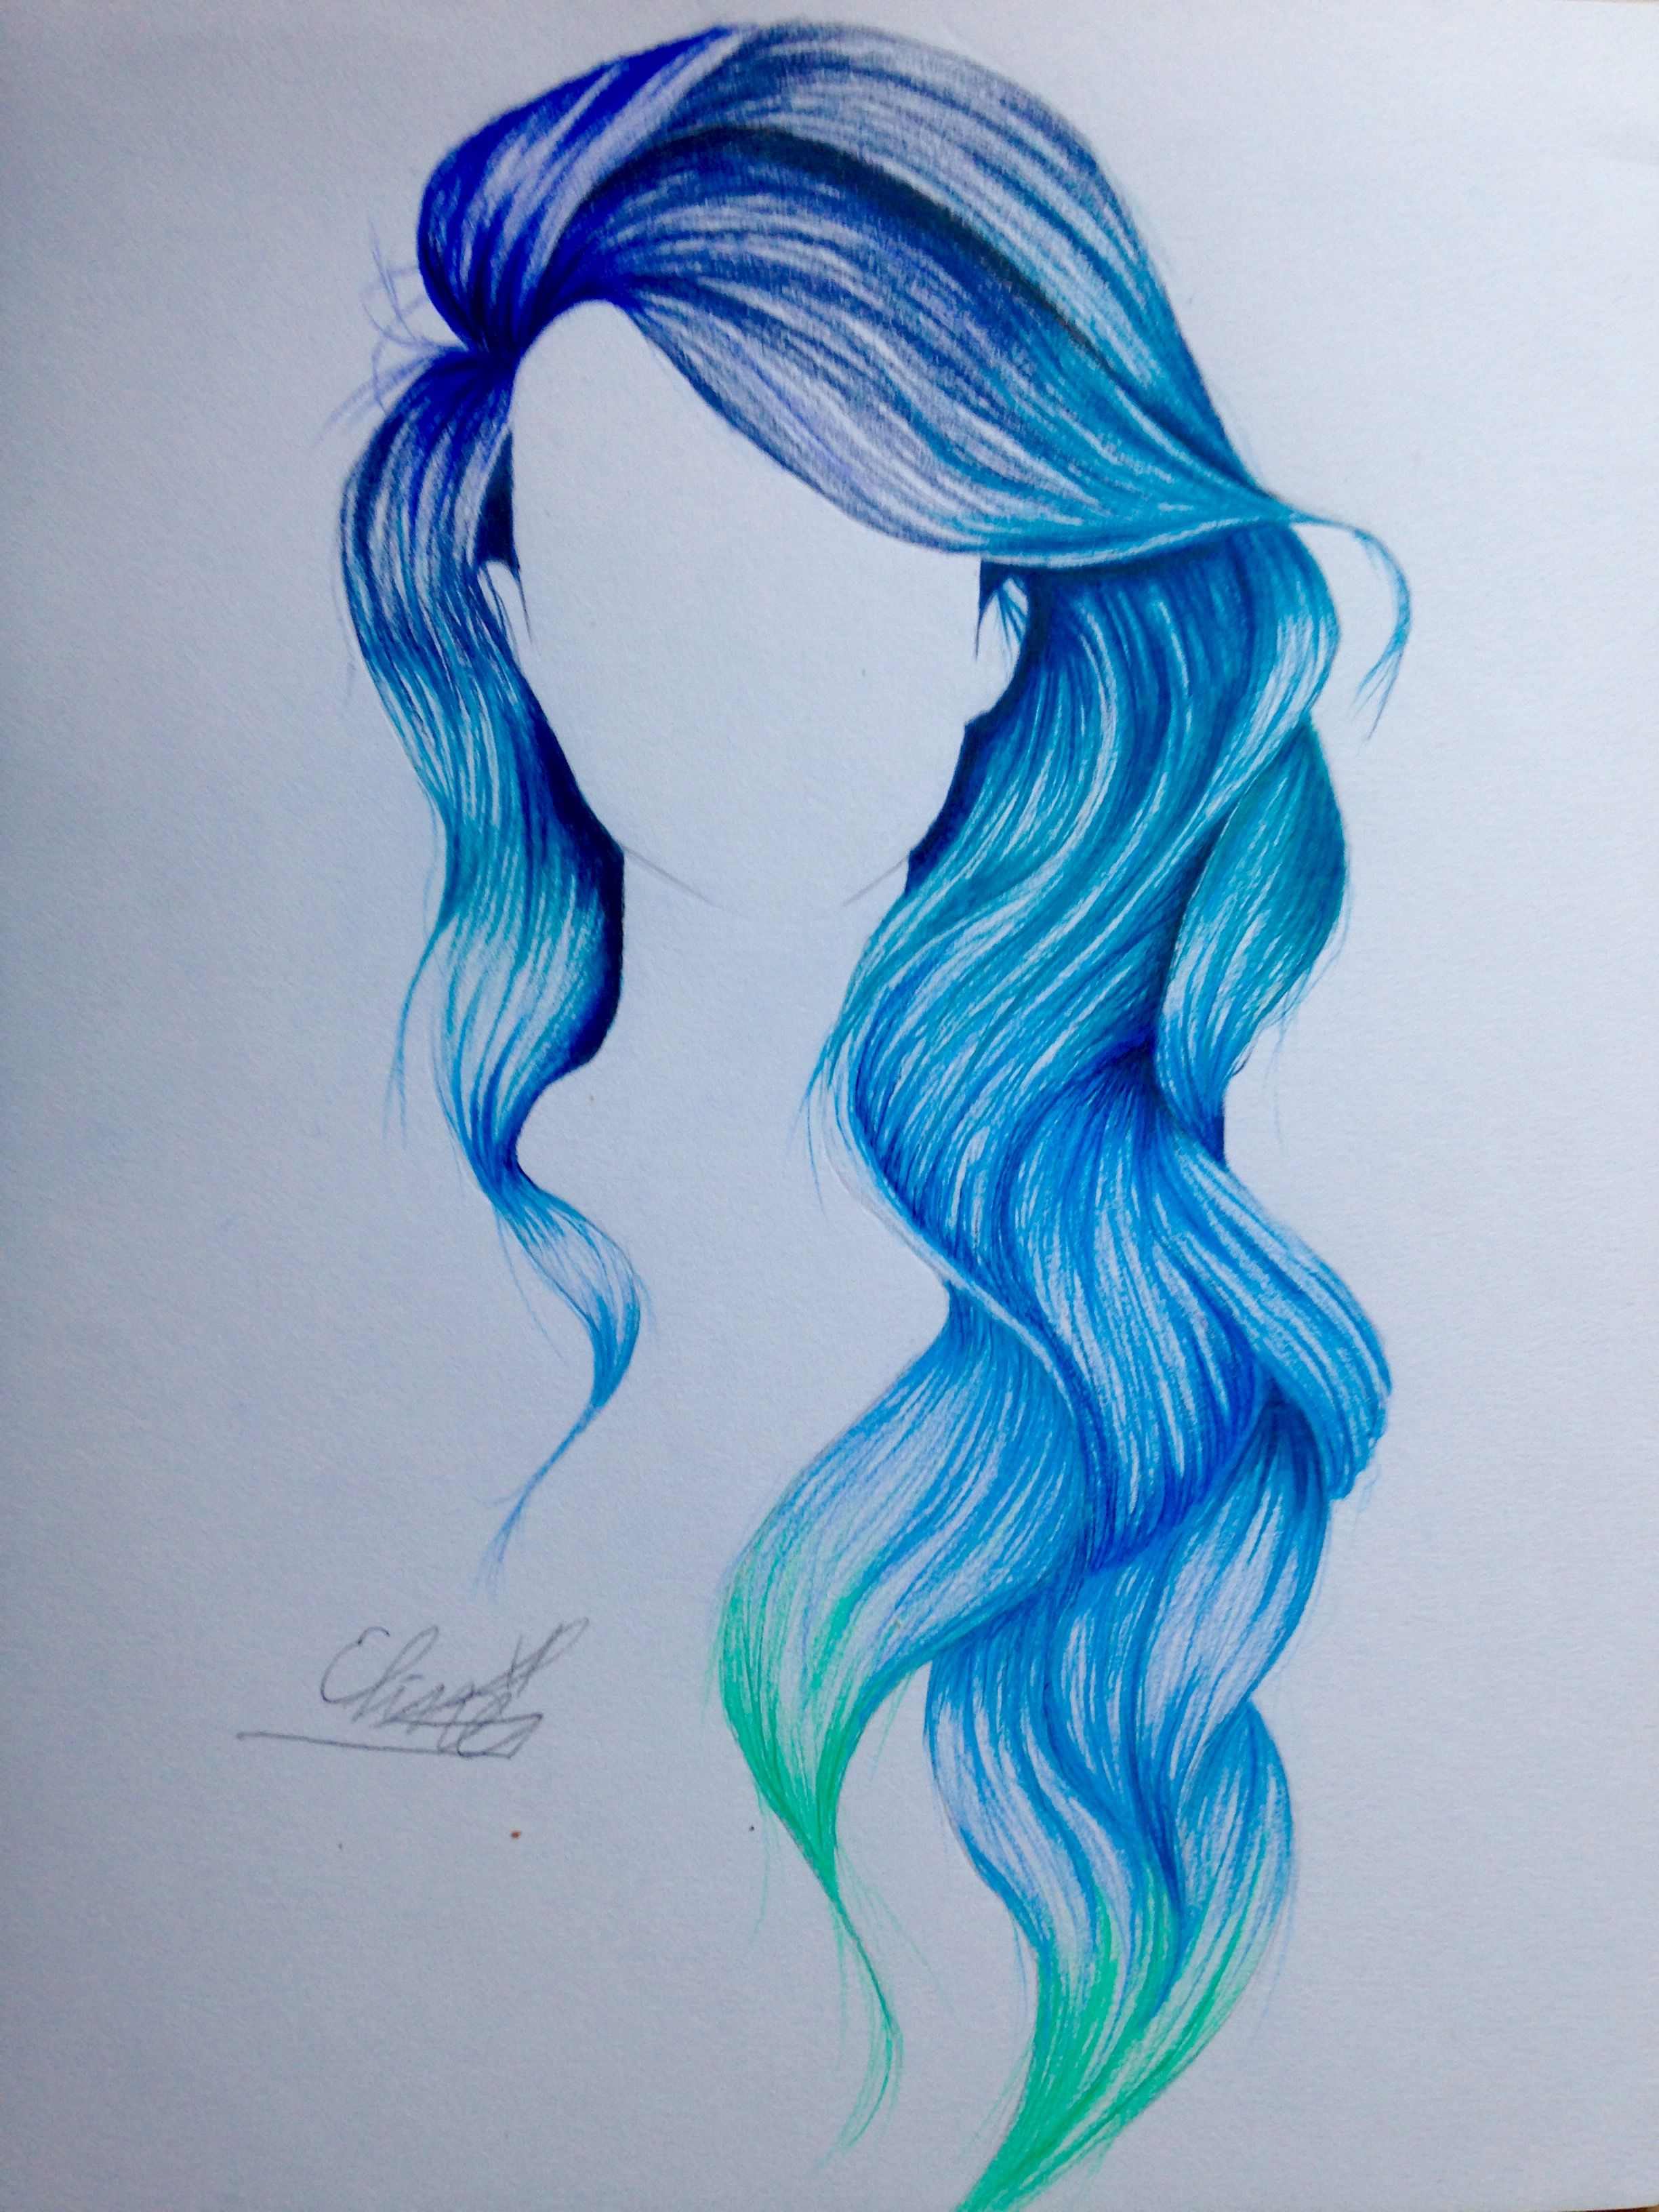 Blue mermaid ombré hair drawing was so much fun to draw art ish